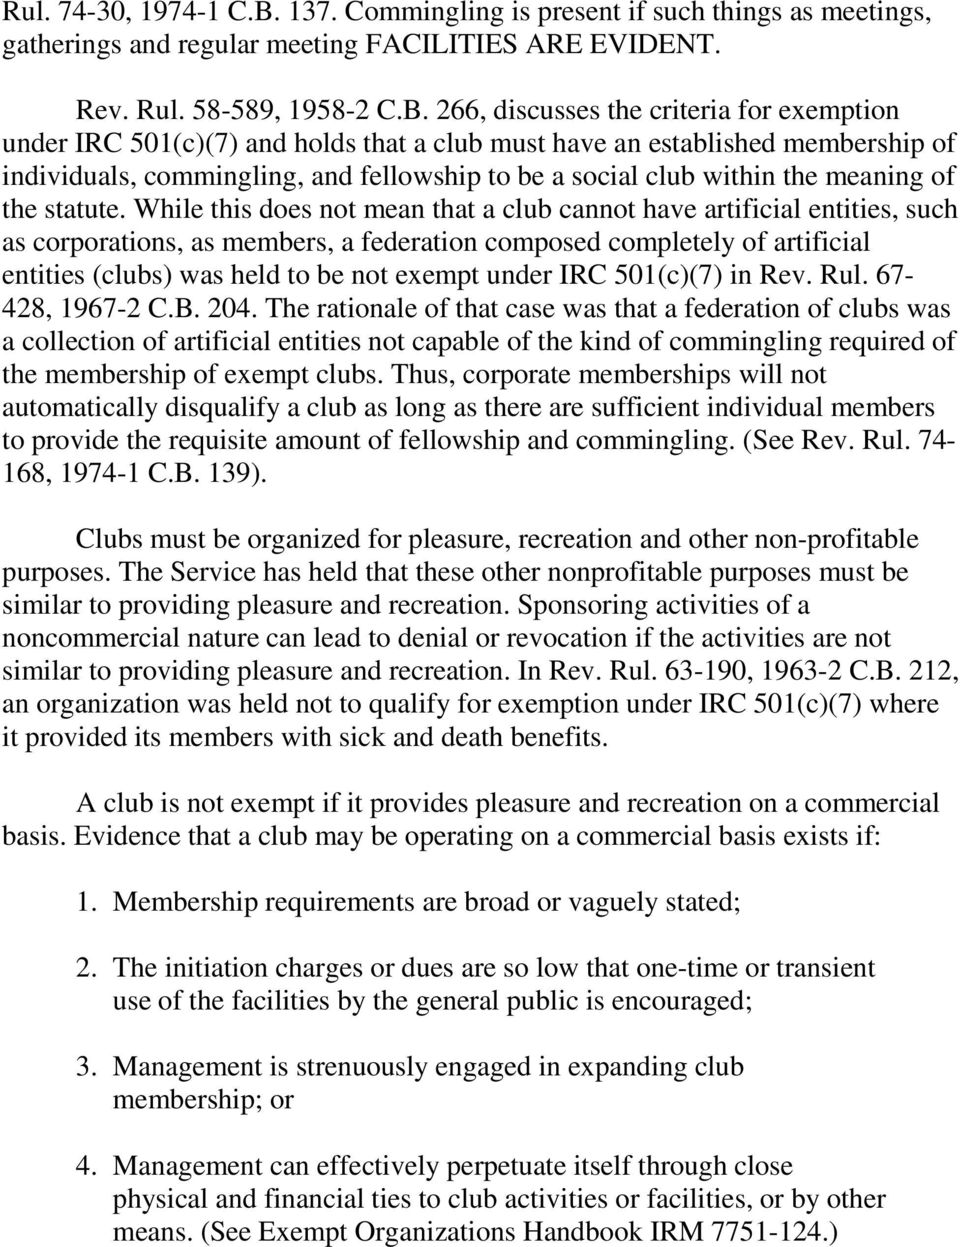 266, discusses the criteria for exemption under IRC 501(c)(7) and holds that a club must have an established membership of individuals, commingling, and fellowship to be a social club within the